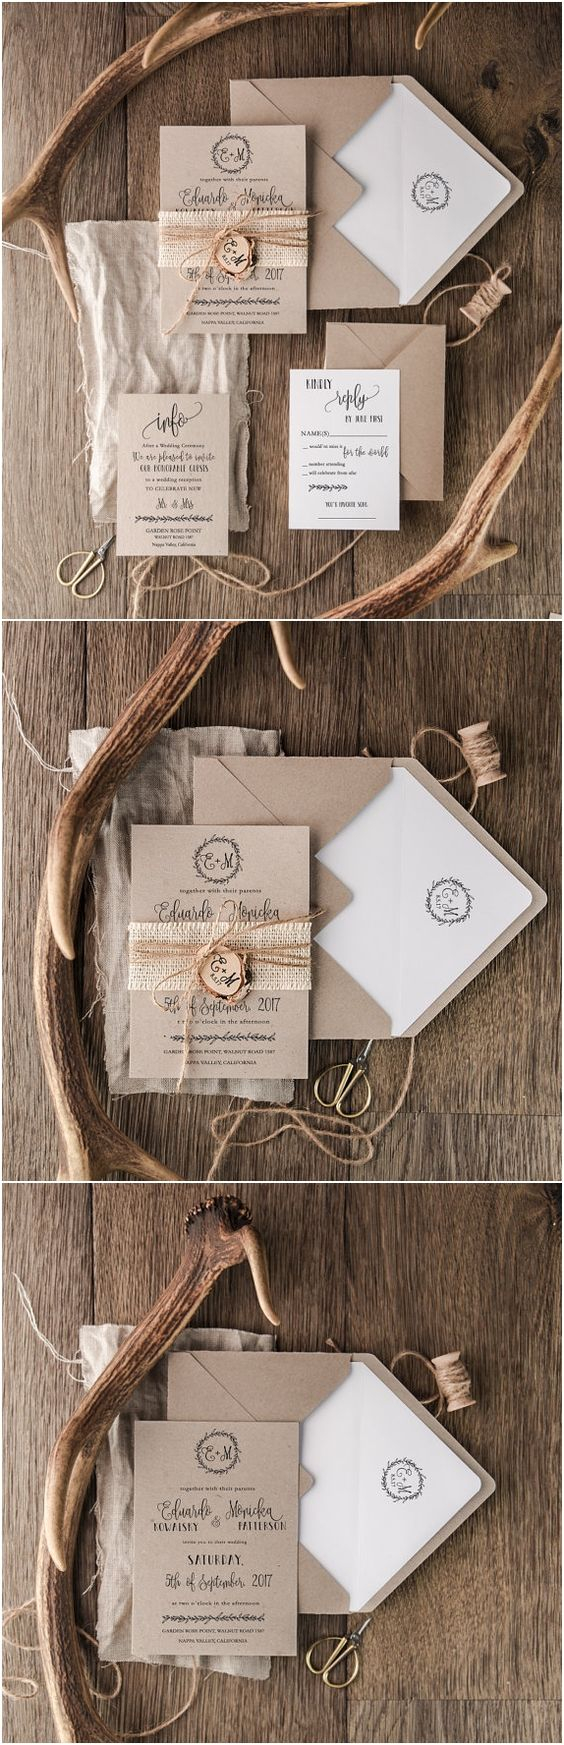 Rustic Wedding Invitations 30 Our Absolutely Favorite Rustic Wedding Invitations Deer Pearl